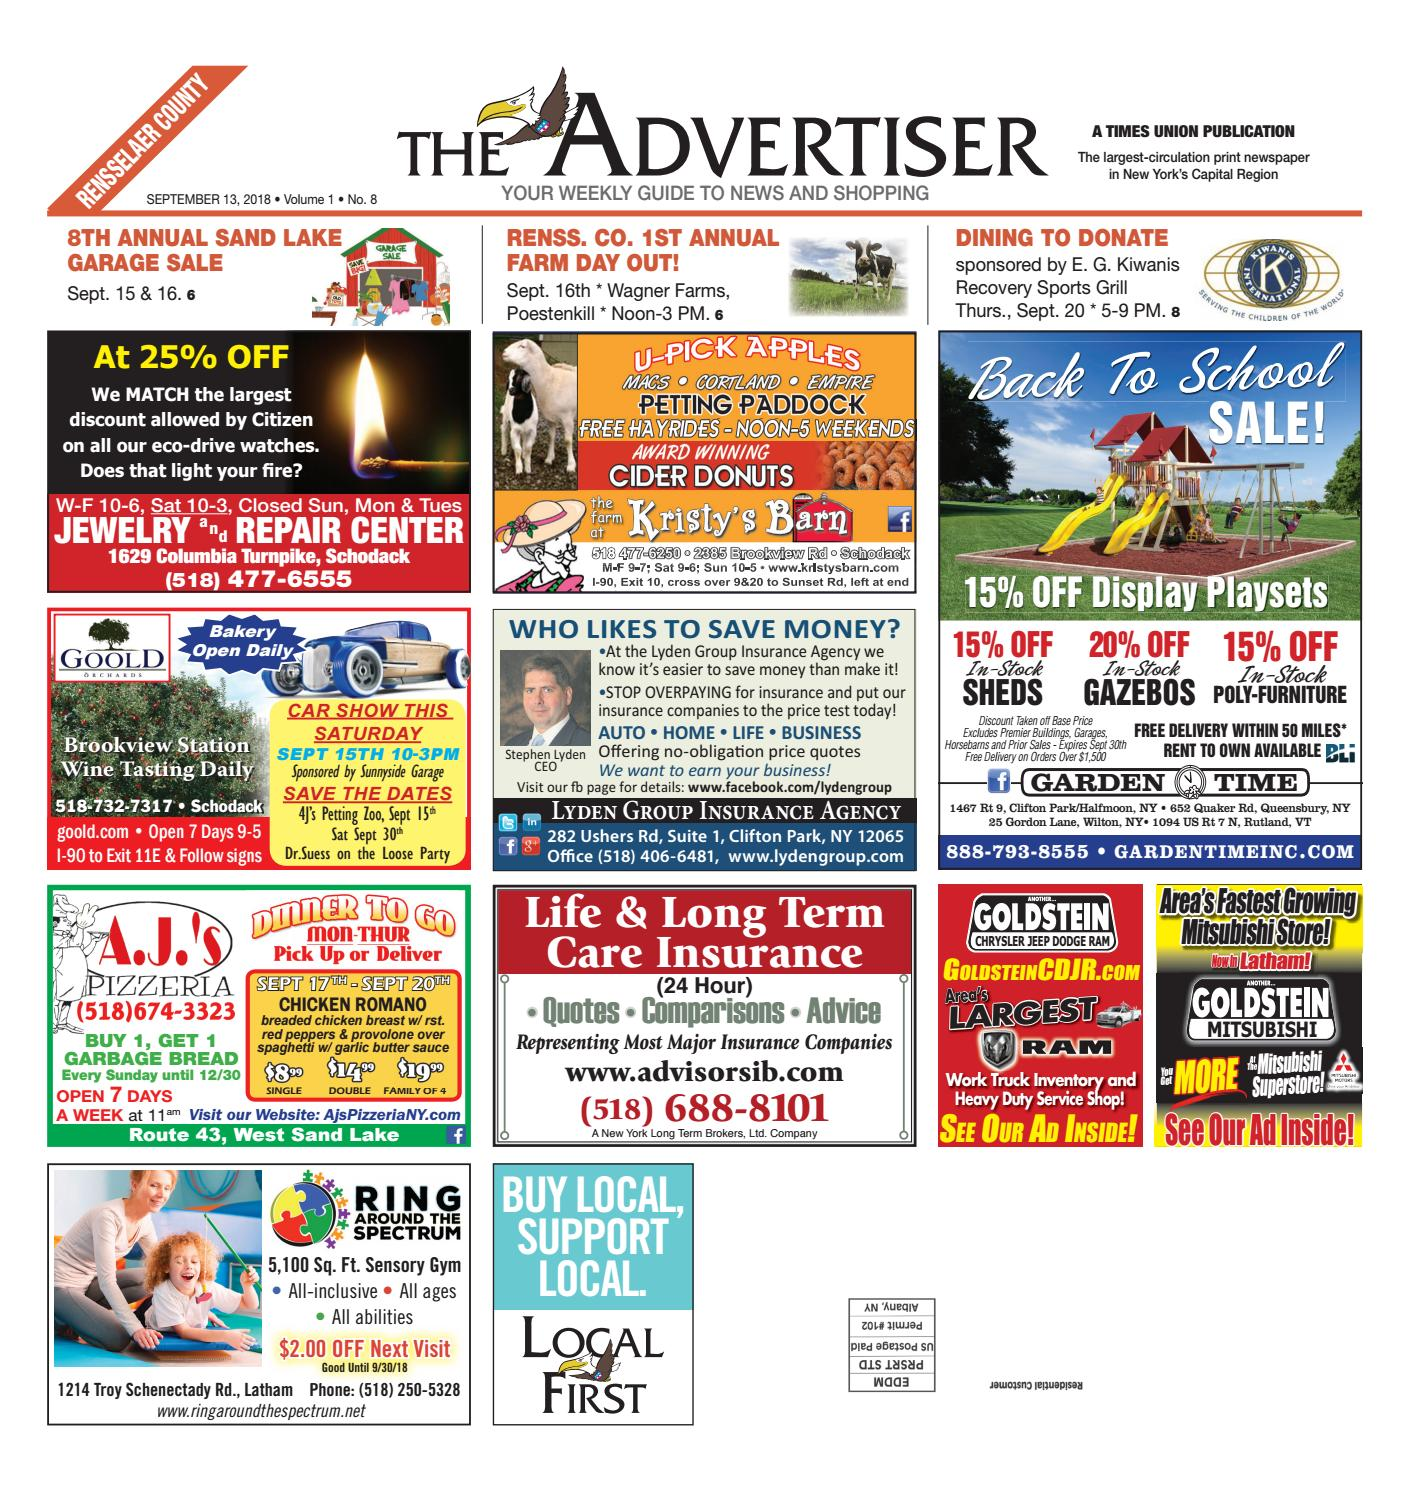 Local First The Advertiser 091318 By Capital Region Weekly